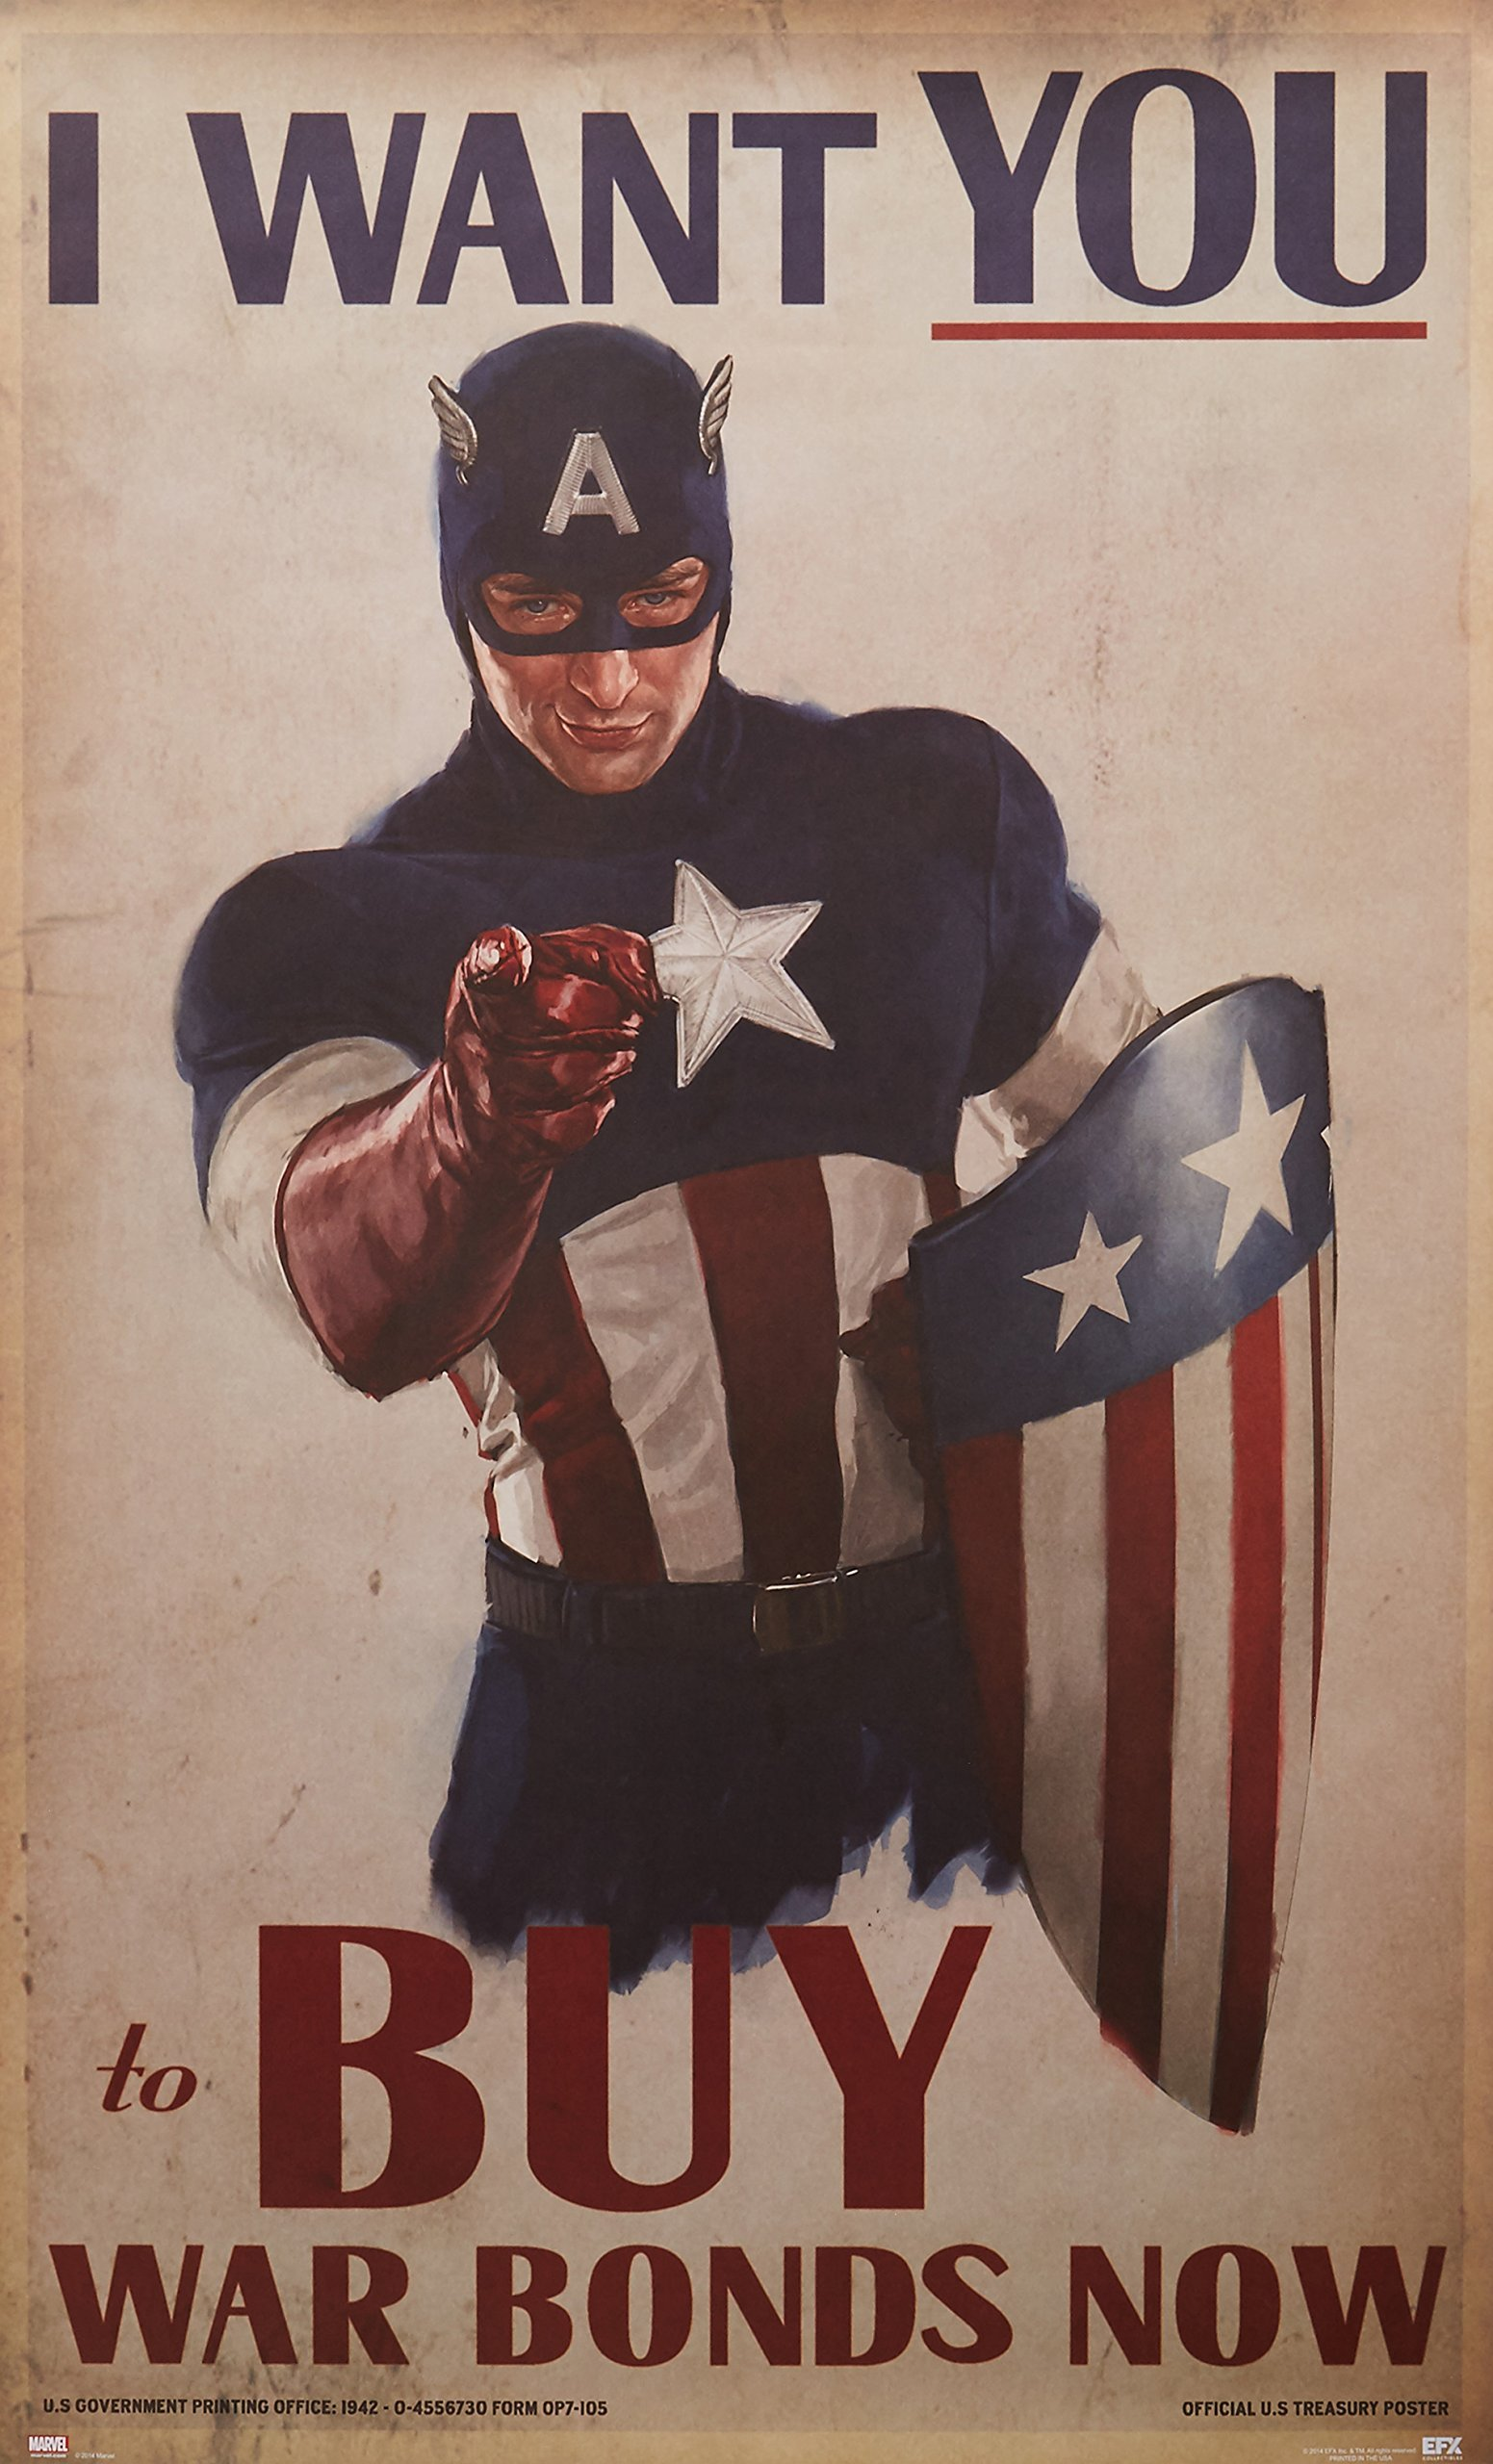 EFX Sports Efx Captain America Movie I Want You Poster